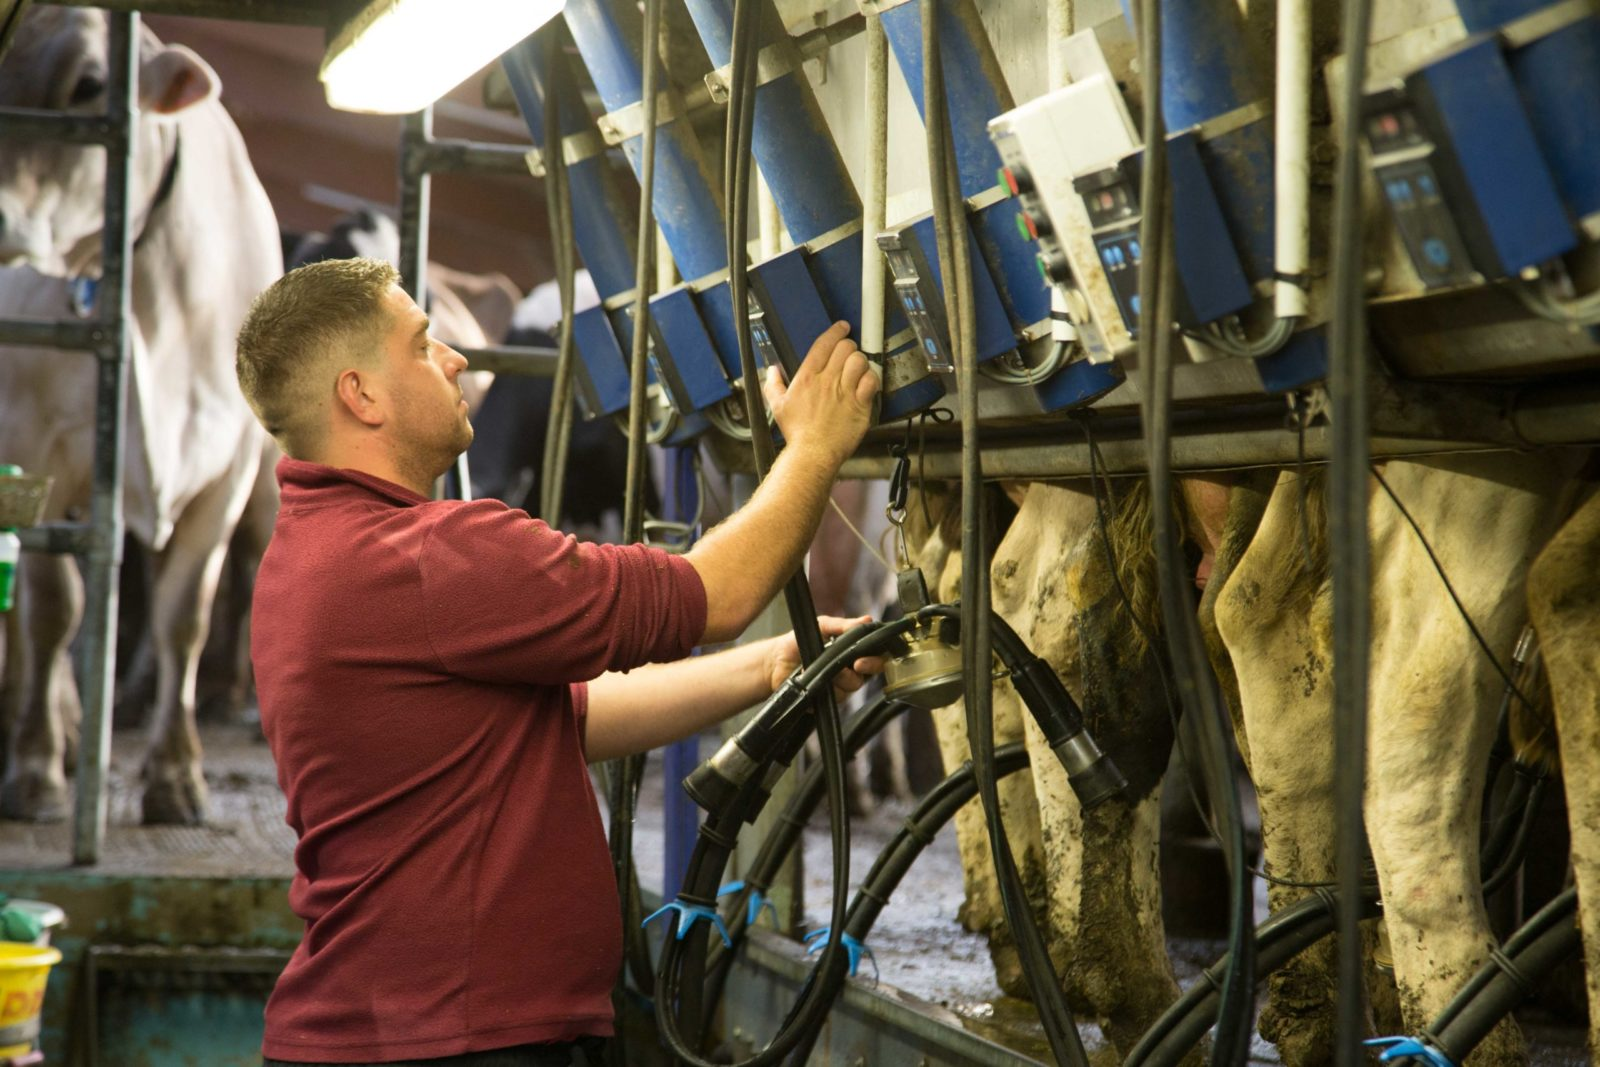 Valentin-farmers-dairy-cow-milking-grand-fermage